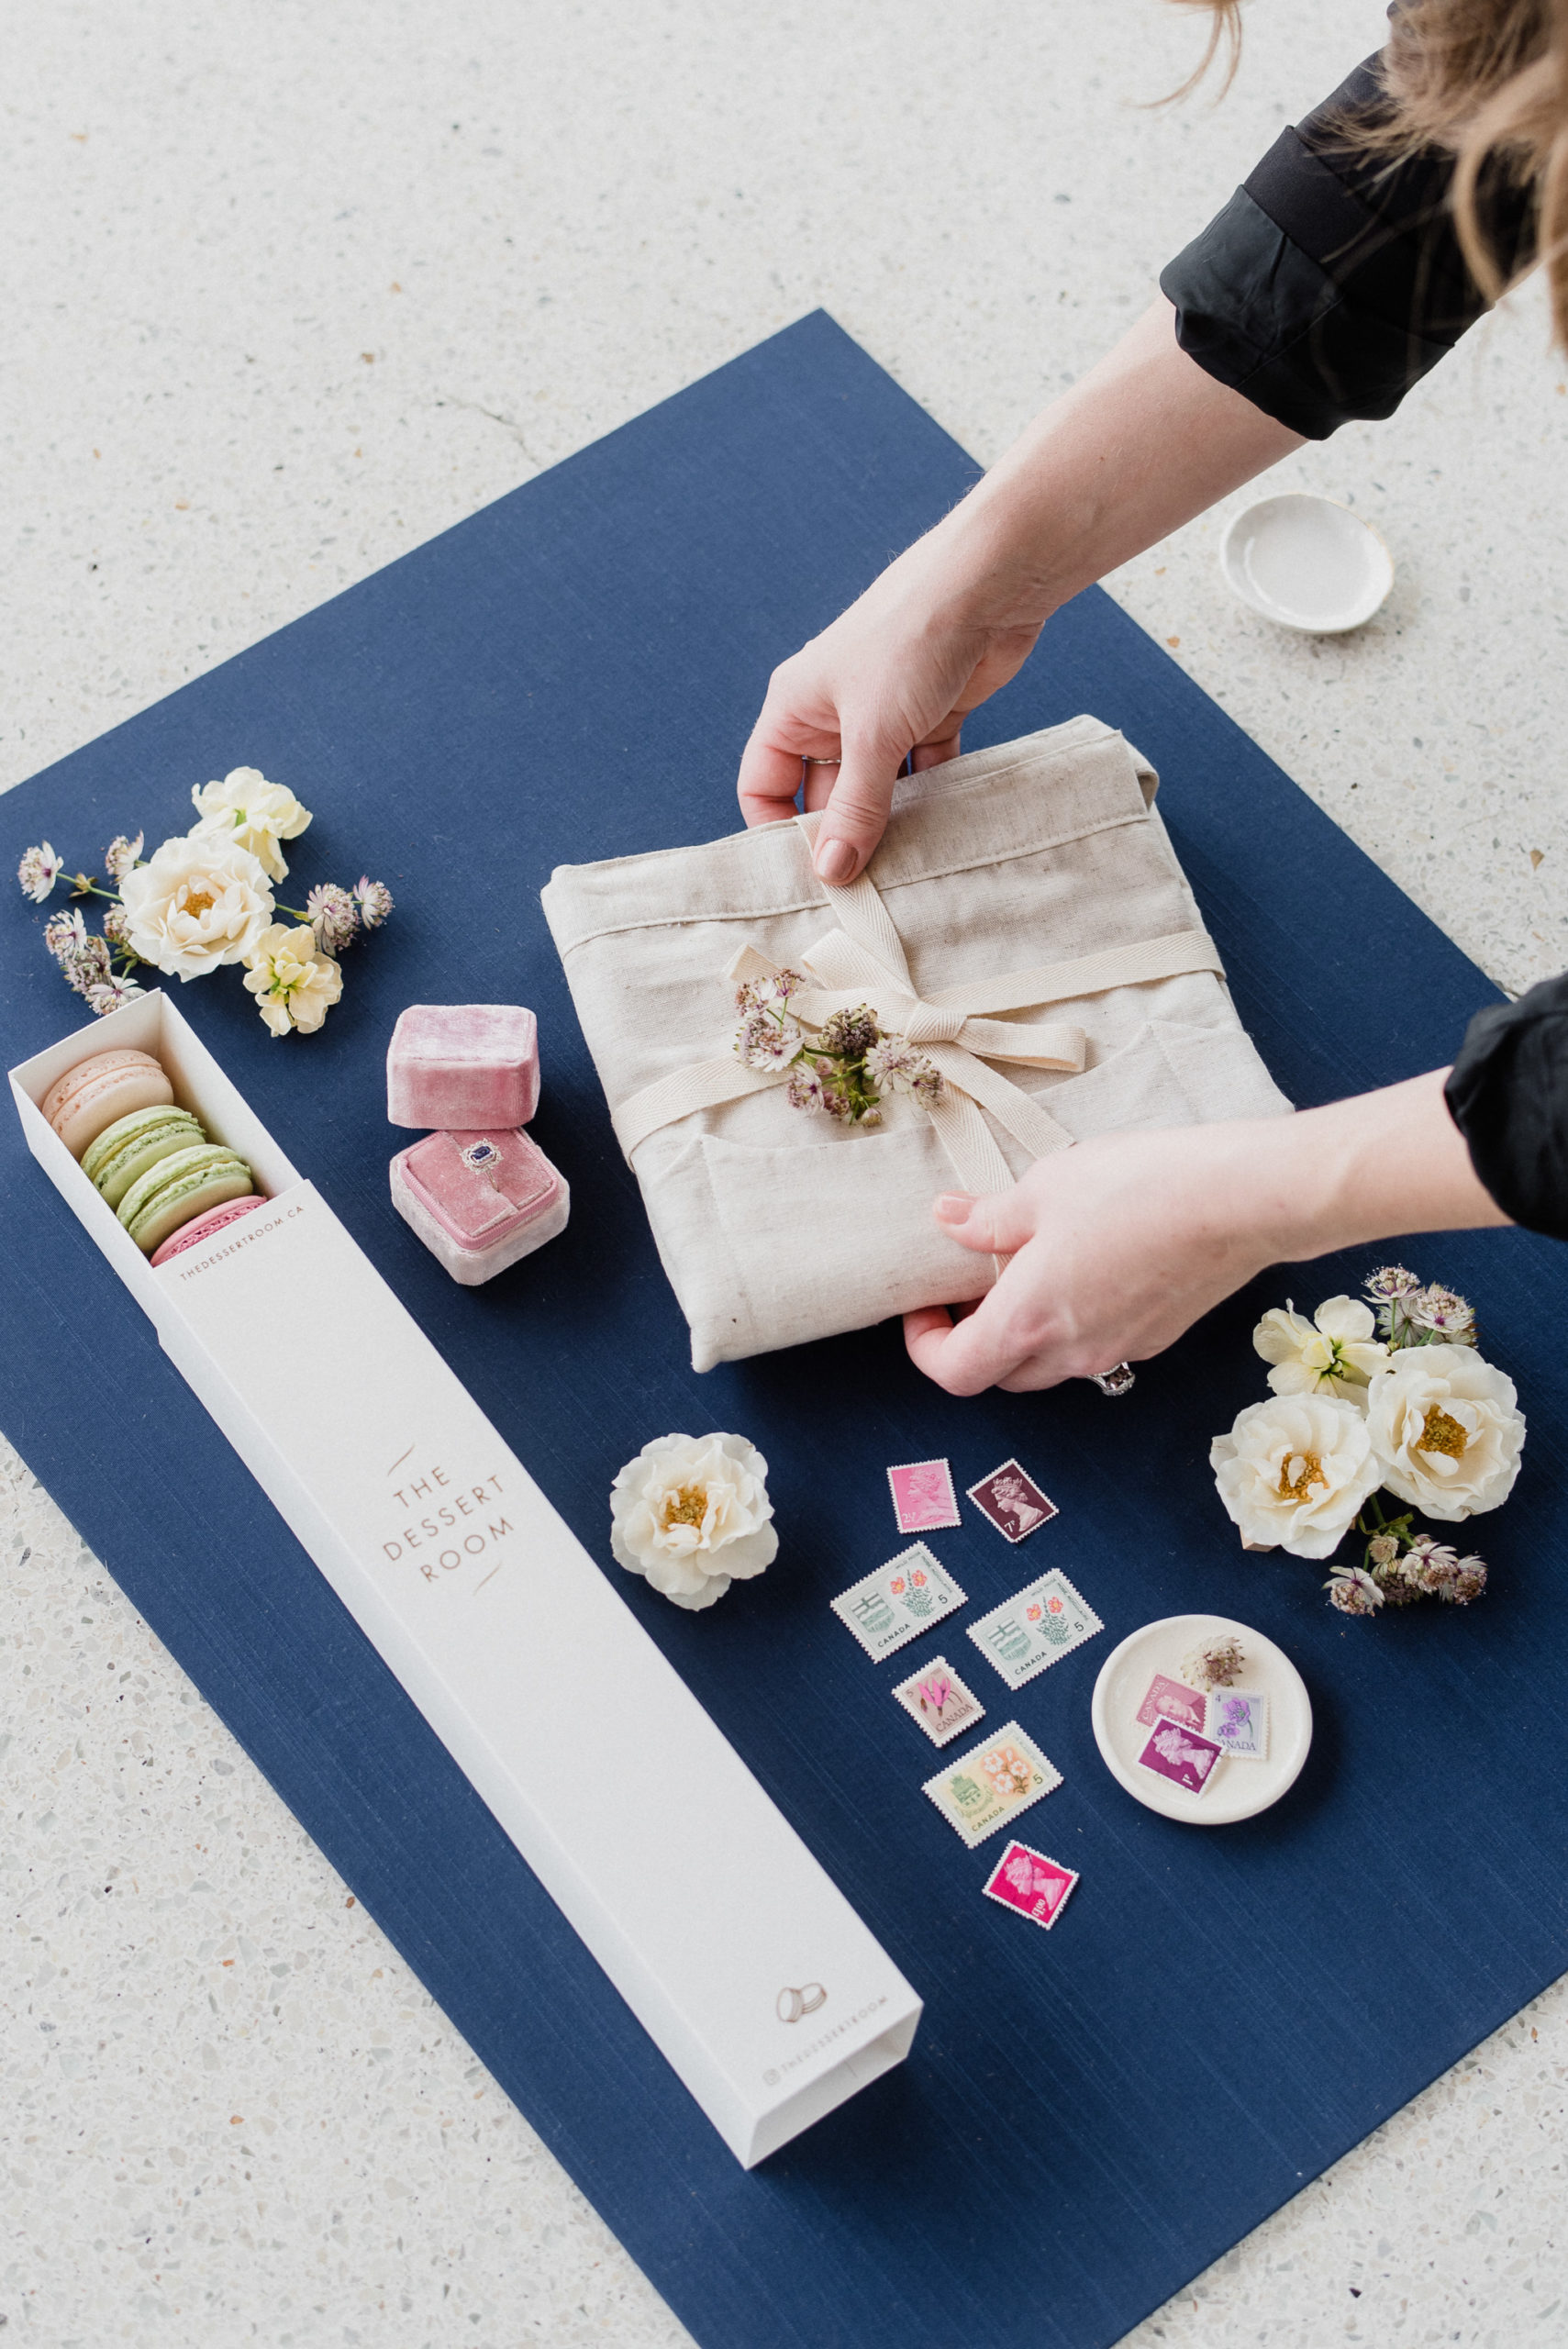 Stationery Planning & Flat-Lay Styling Workshop by The Revel Sessions | Jenn Kavanagh Photography